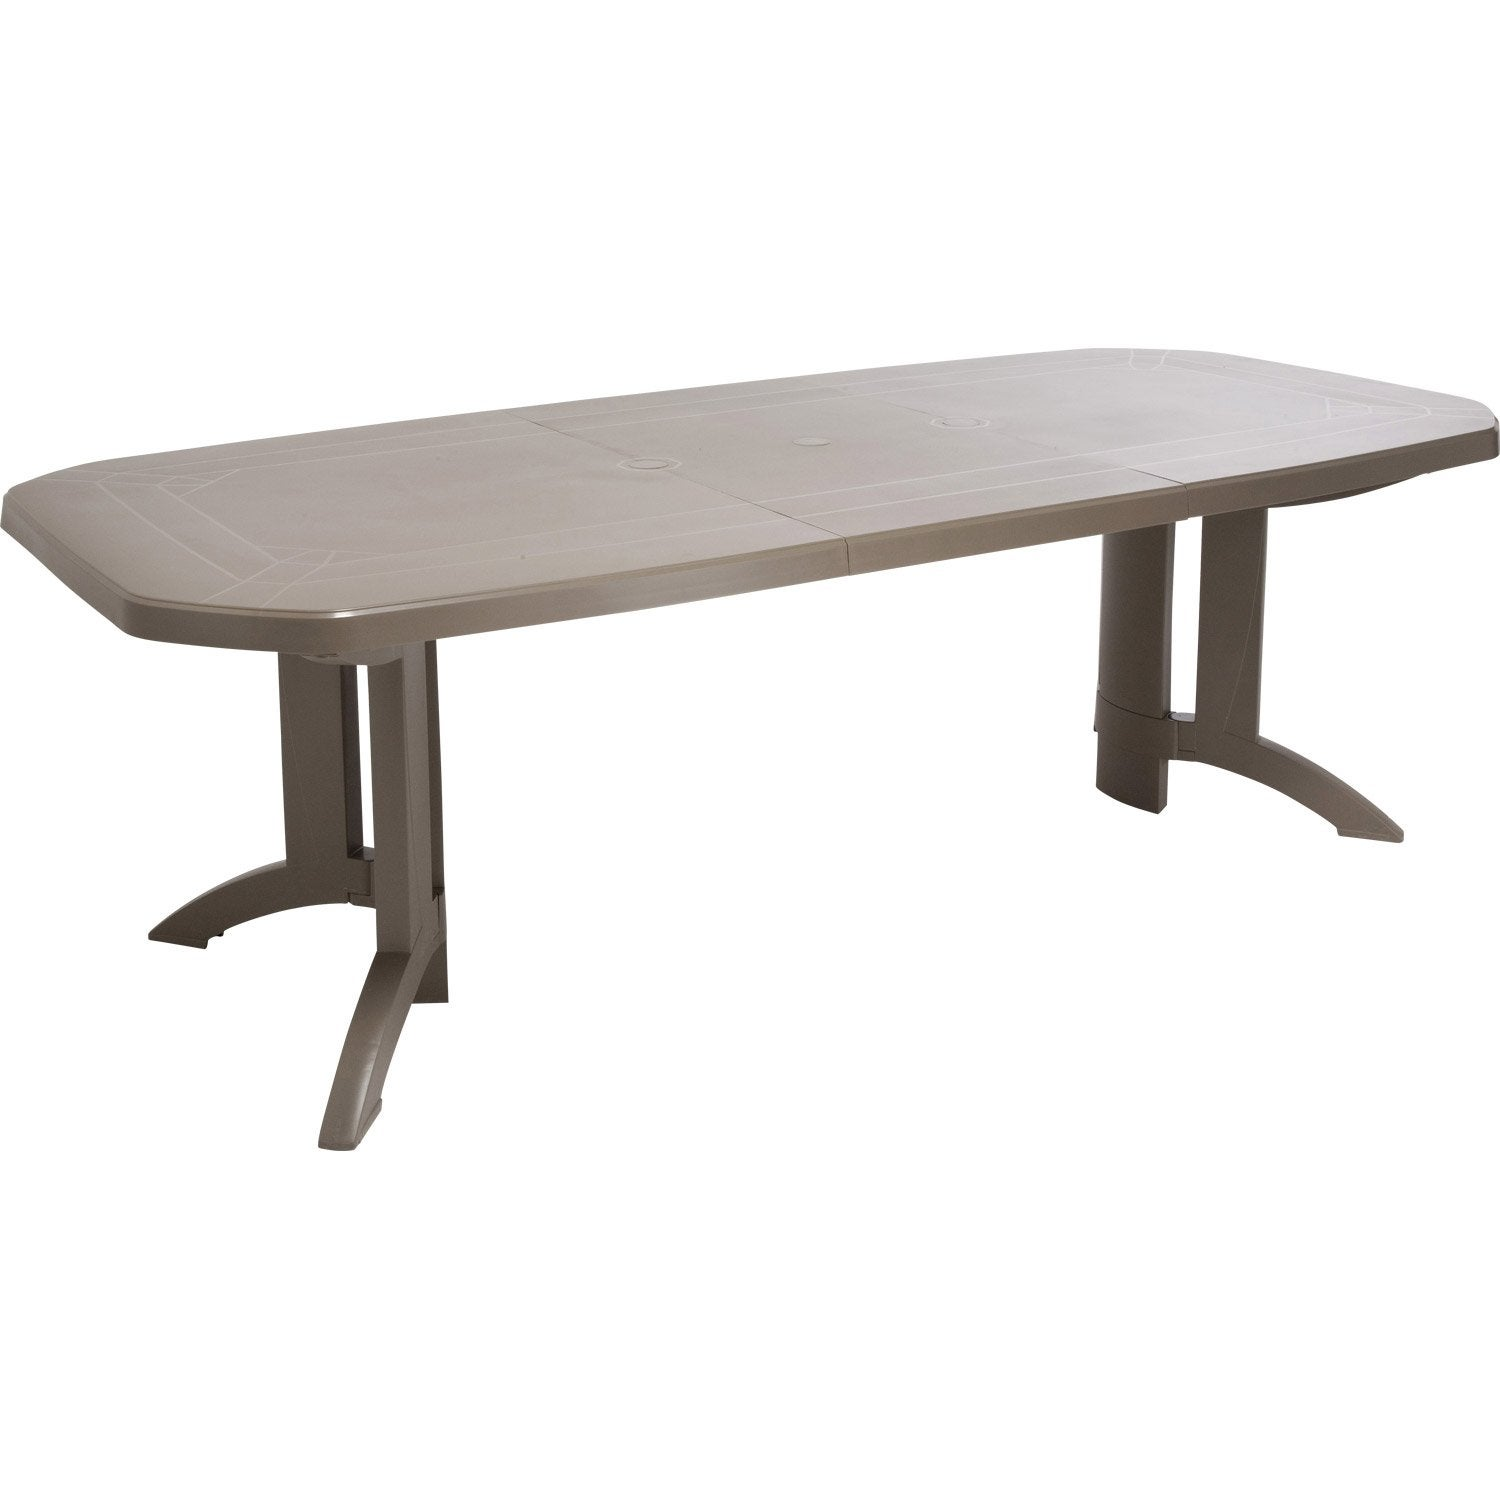 Table de jardin grosfillex v ga rectangulaire taupe 10 for Table avec rallonge pas cher